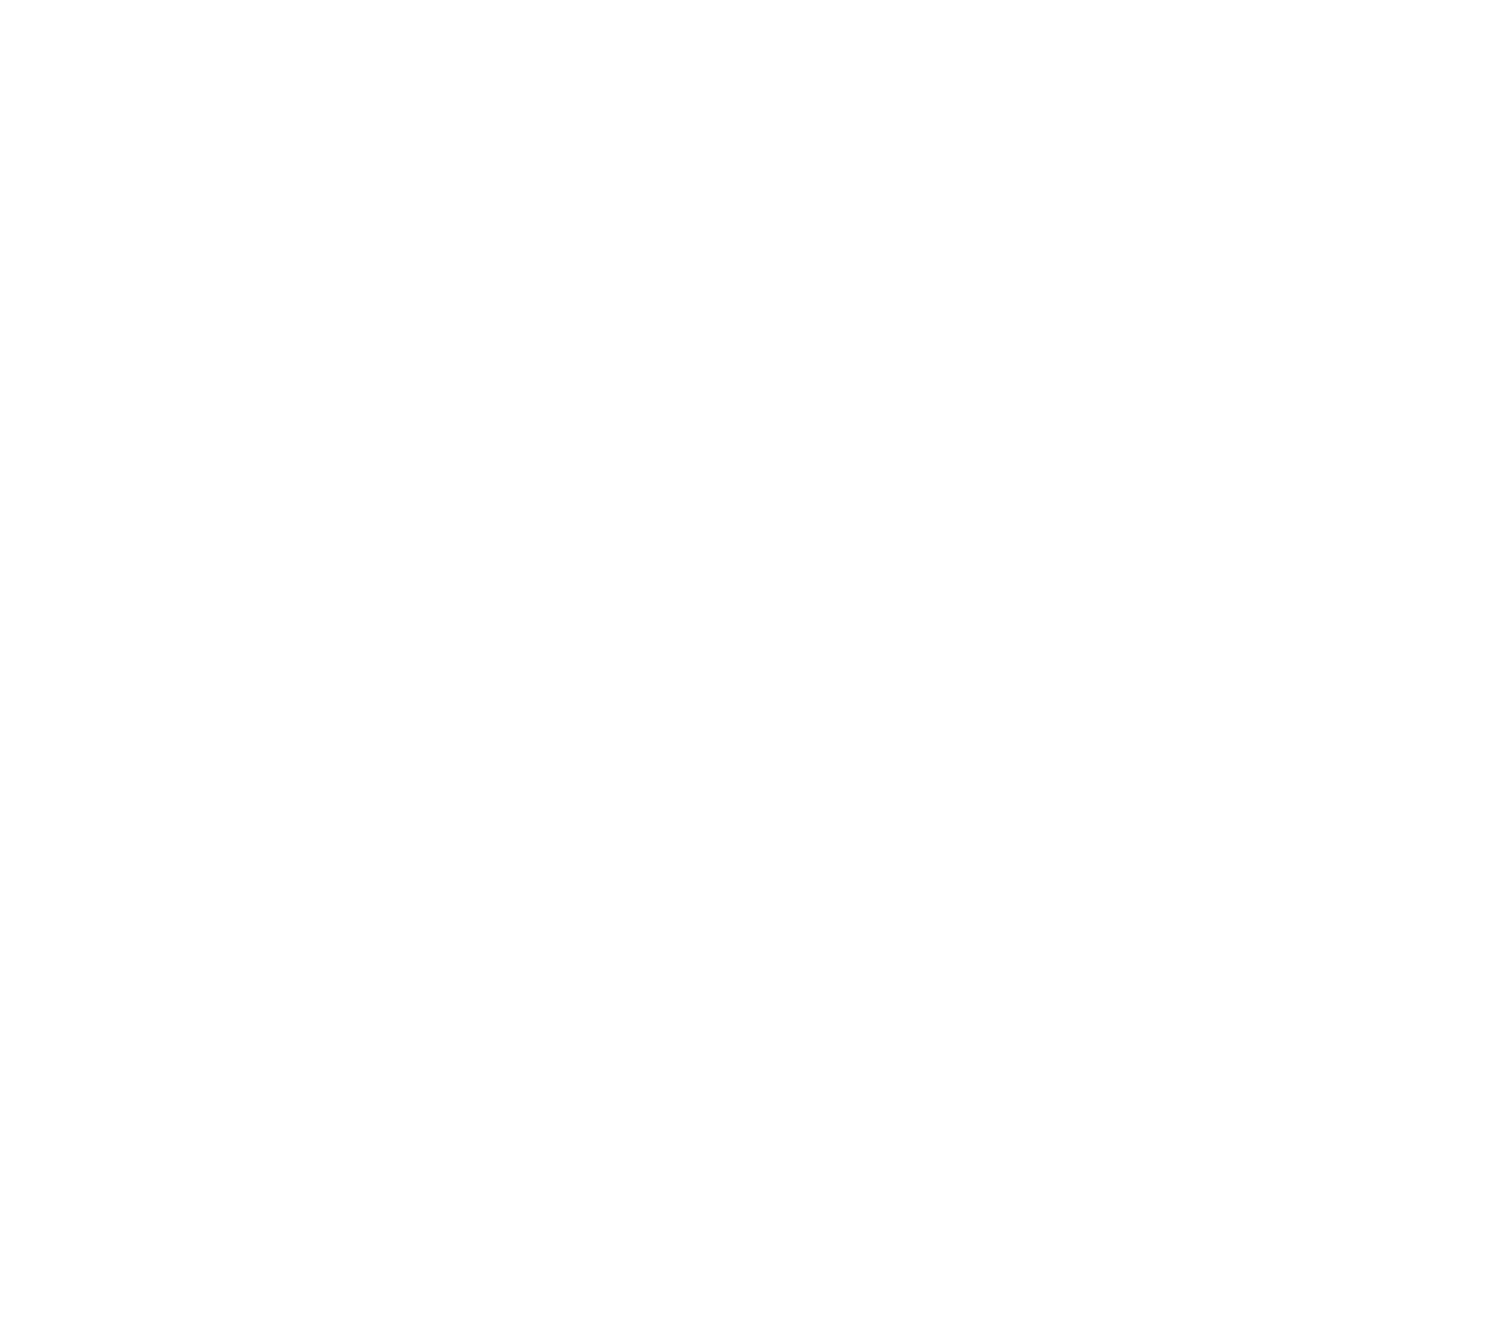 Thompson Road Bible Fellowship